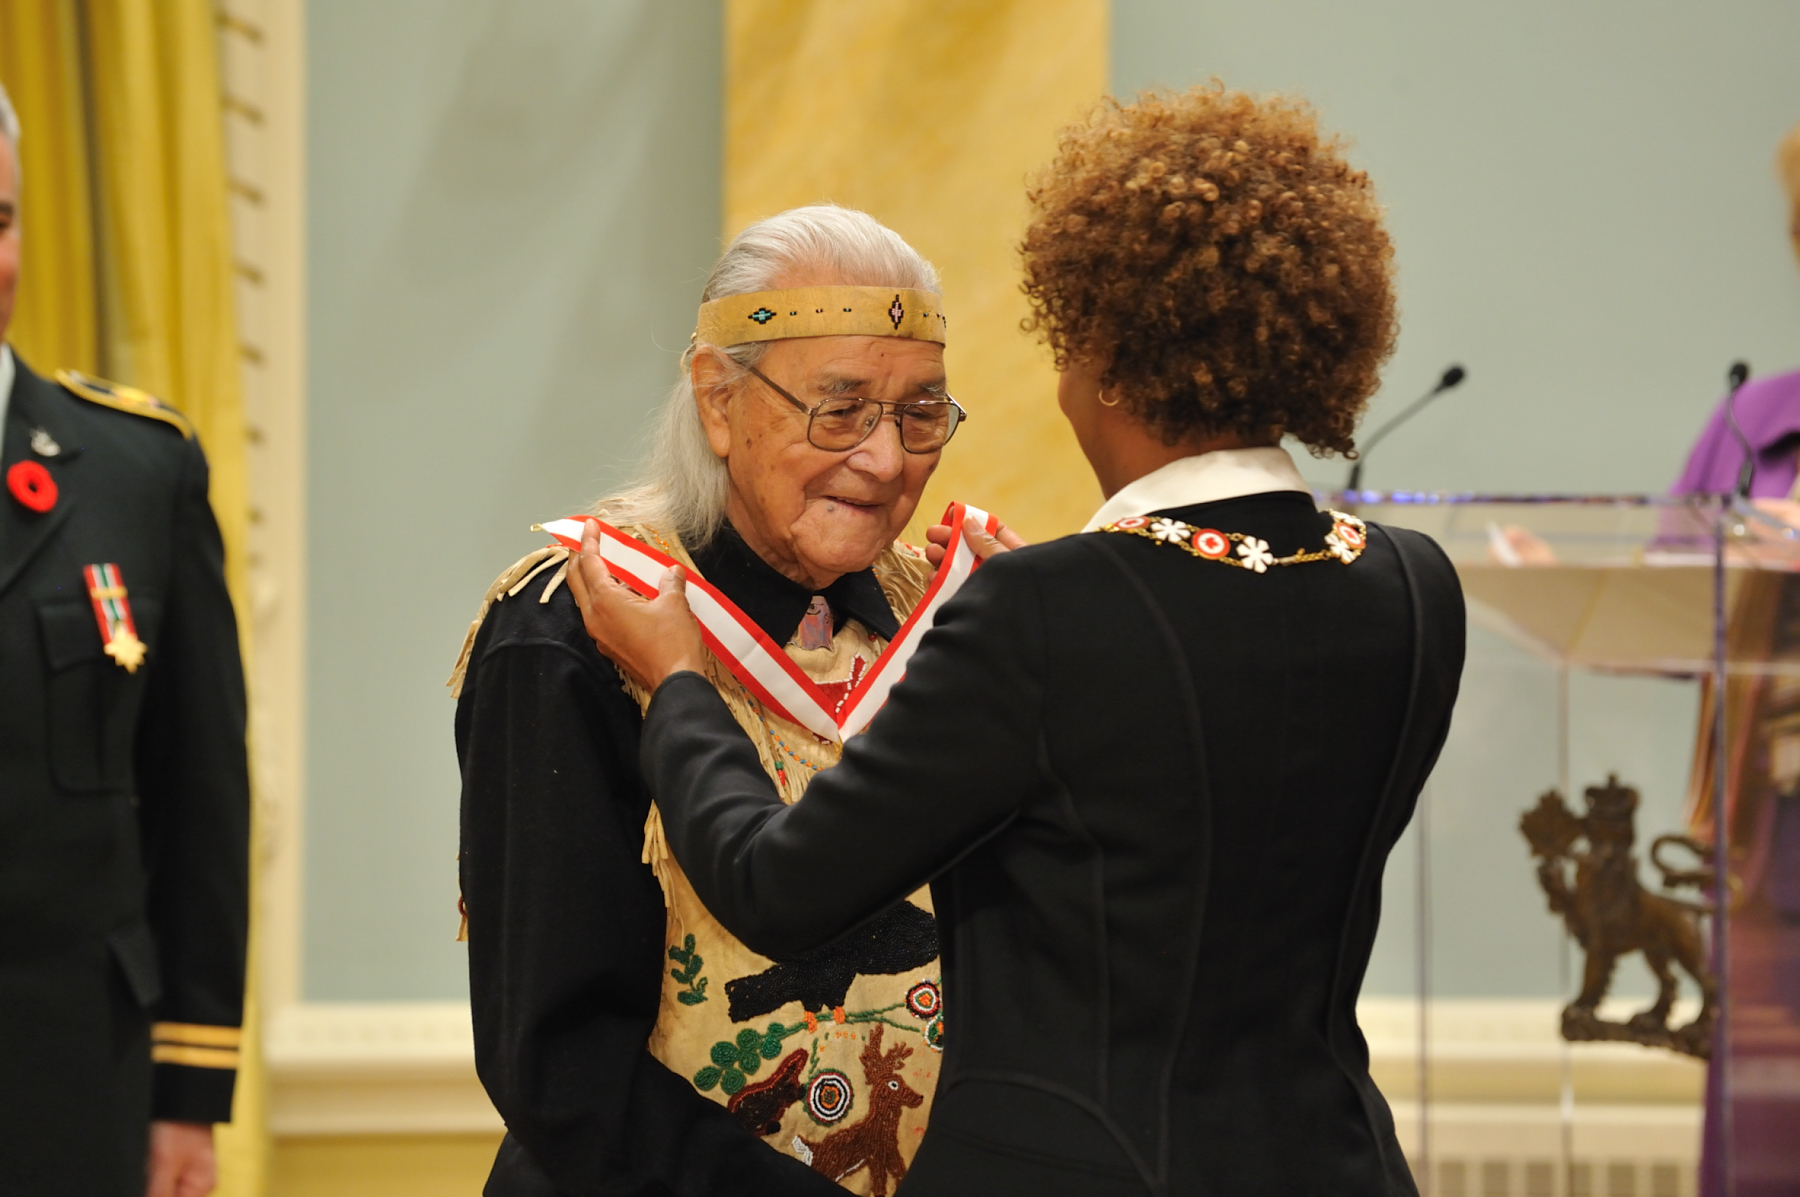 Her Excellency the Right Honourable Michaëlle Jean, Governor General of Canada, presented the insignia of Officer of the Order of Canada to William Commanda, O.C., who has spent a lifetime working for greater understanding of Aboriginal culture.